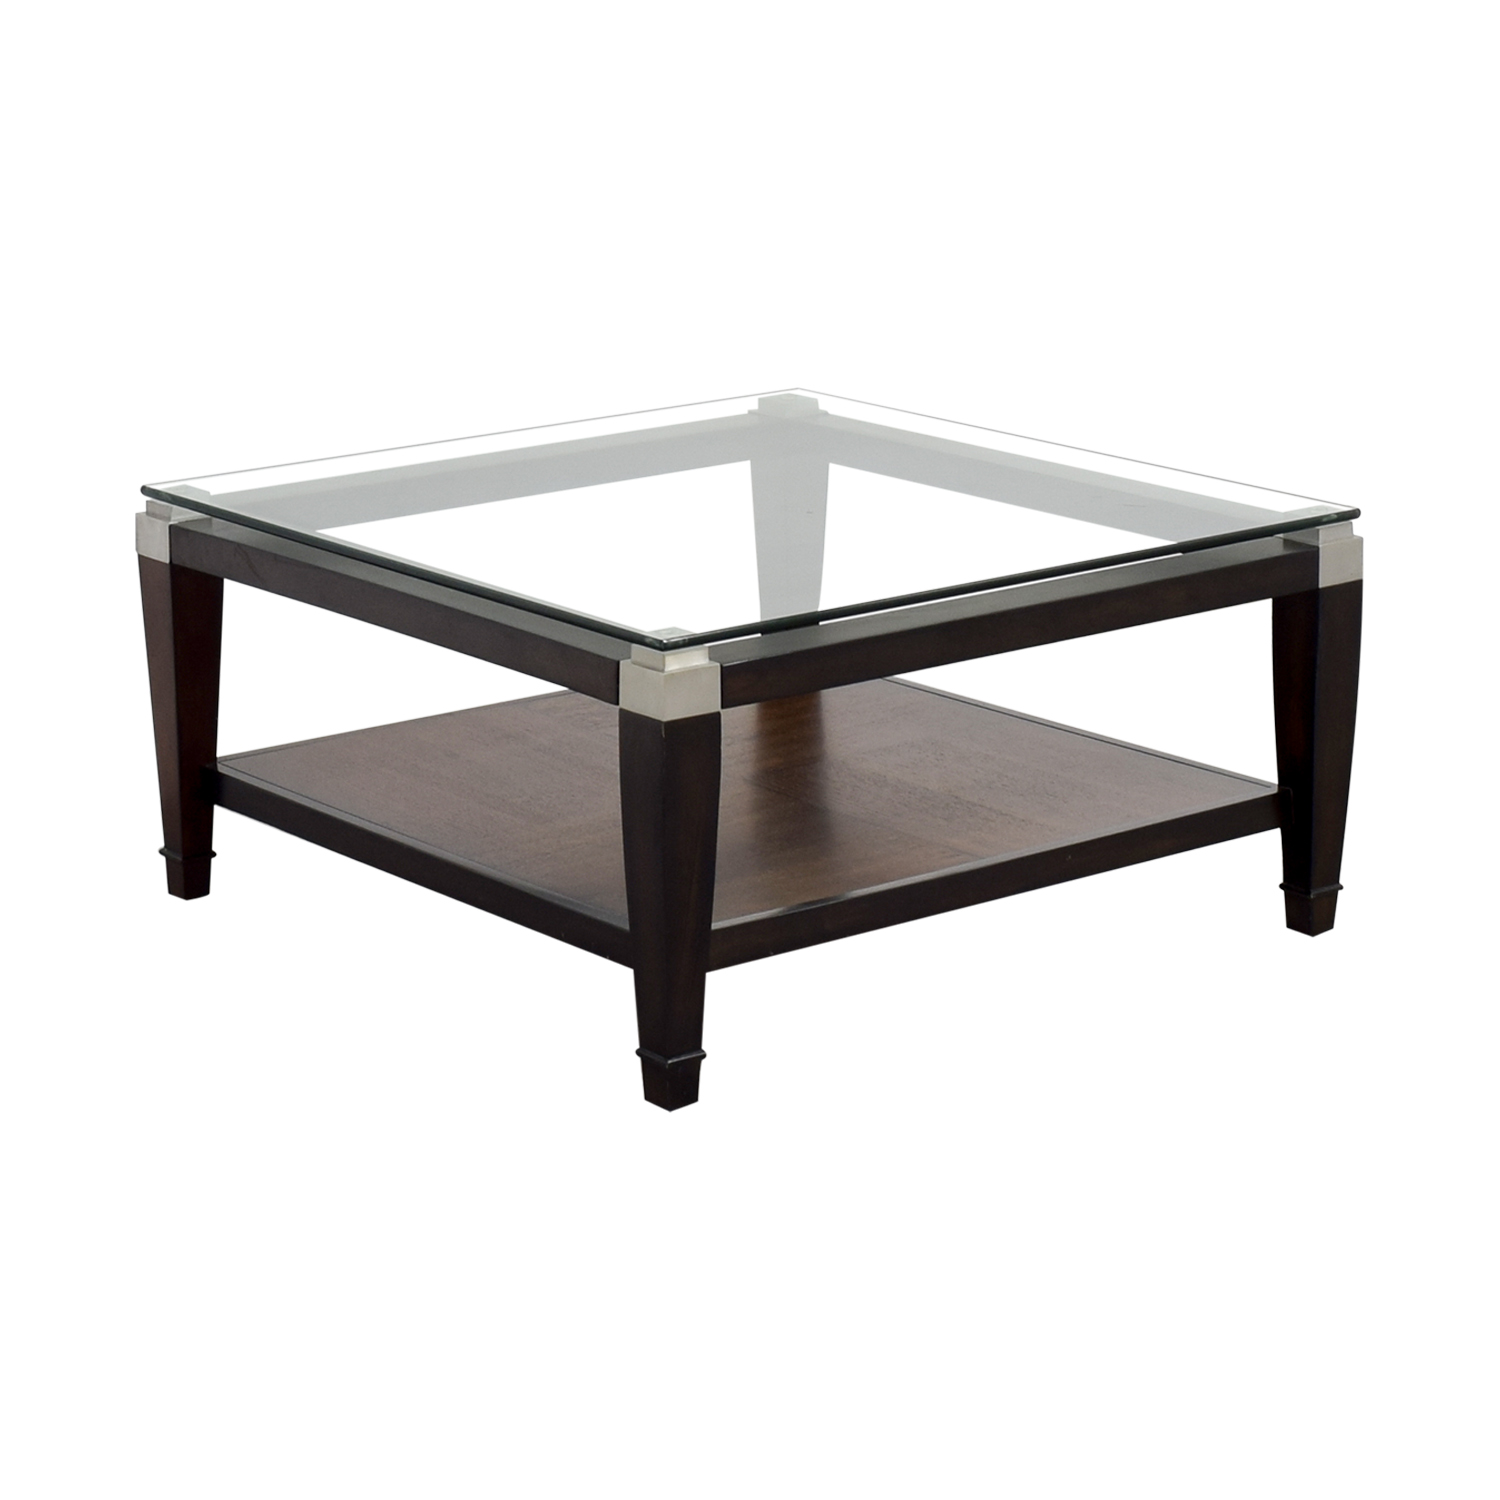 78 Off Raymour And Flanigan Raymour Flanigan Wood And Glass Coffee Table Tables